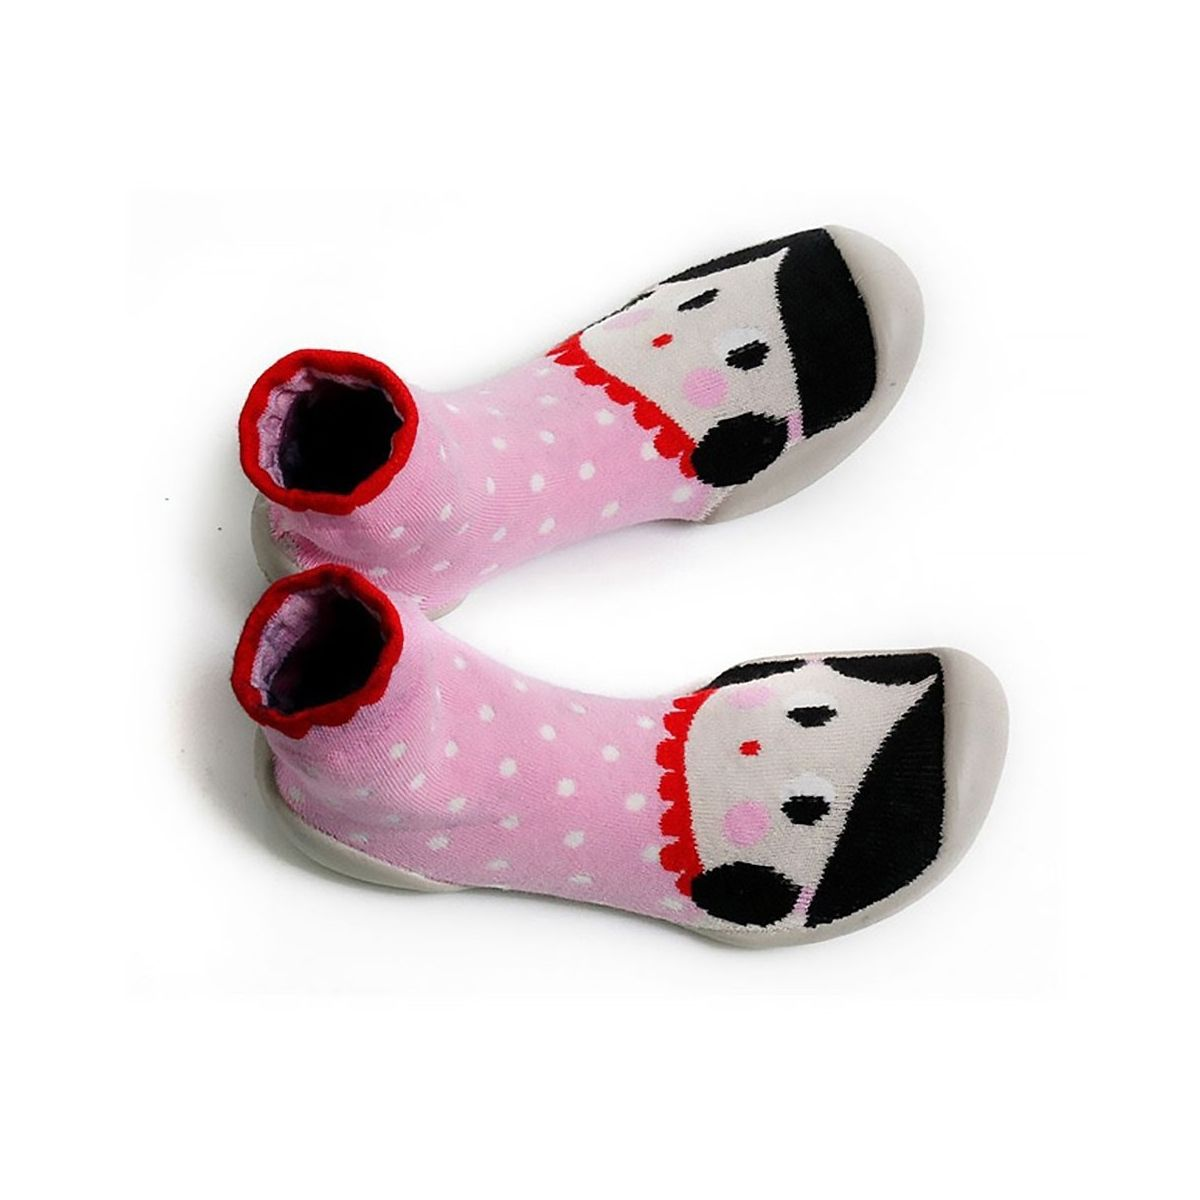 Slipper Socks Chaussons Fete BEST pink - Collégien